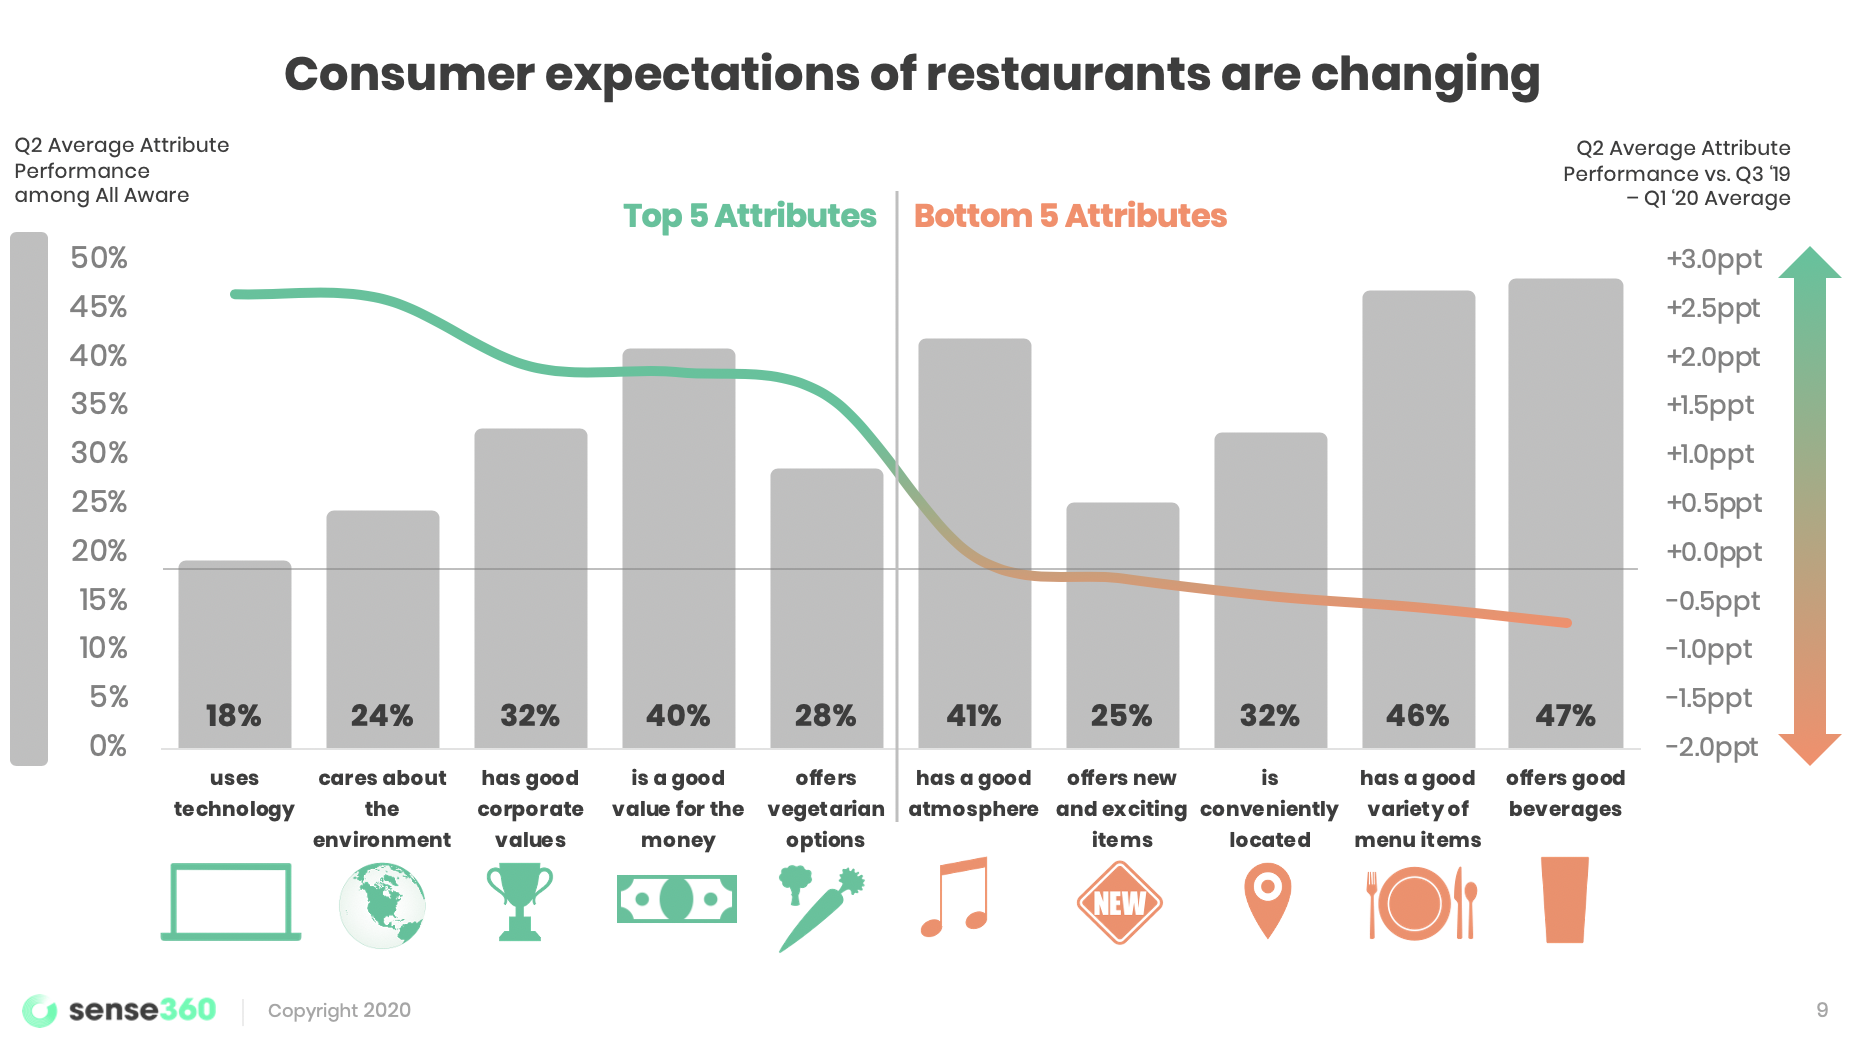 consumer expectations of restaurants are changing